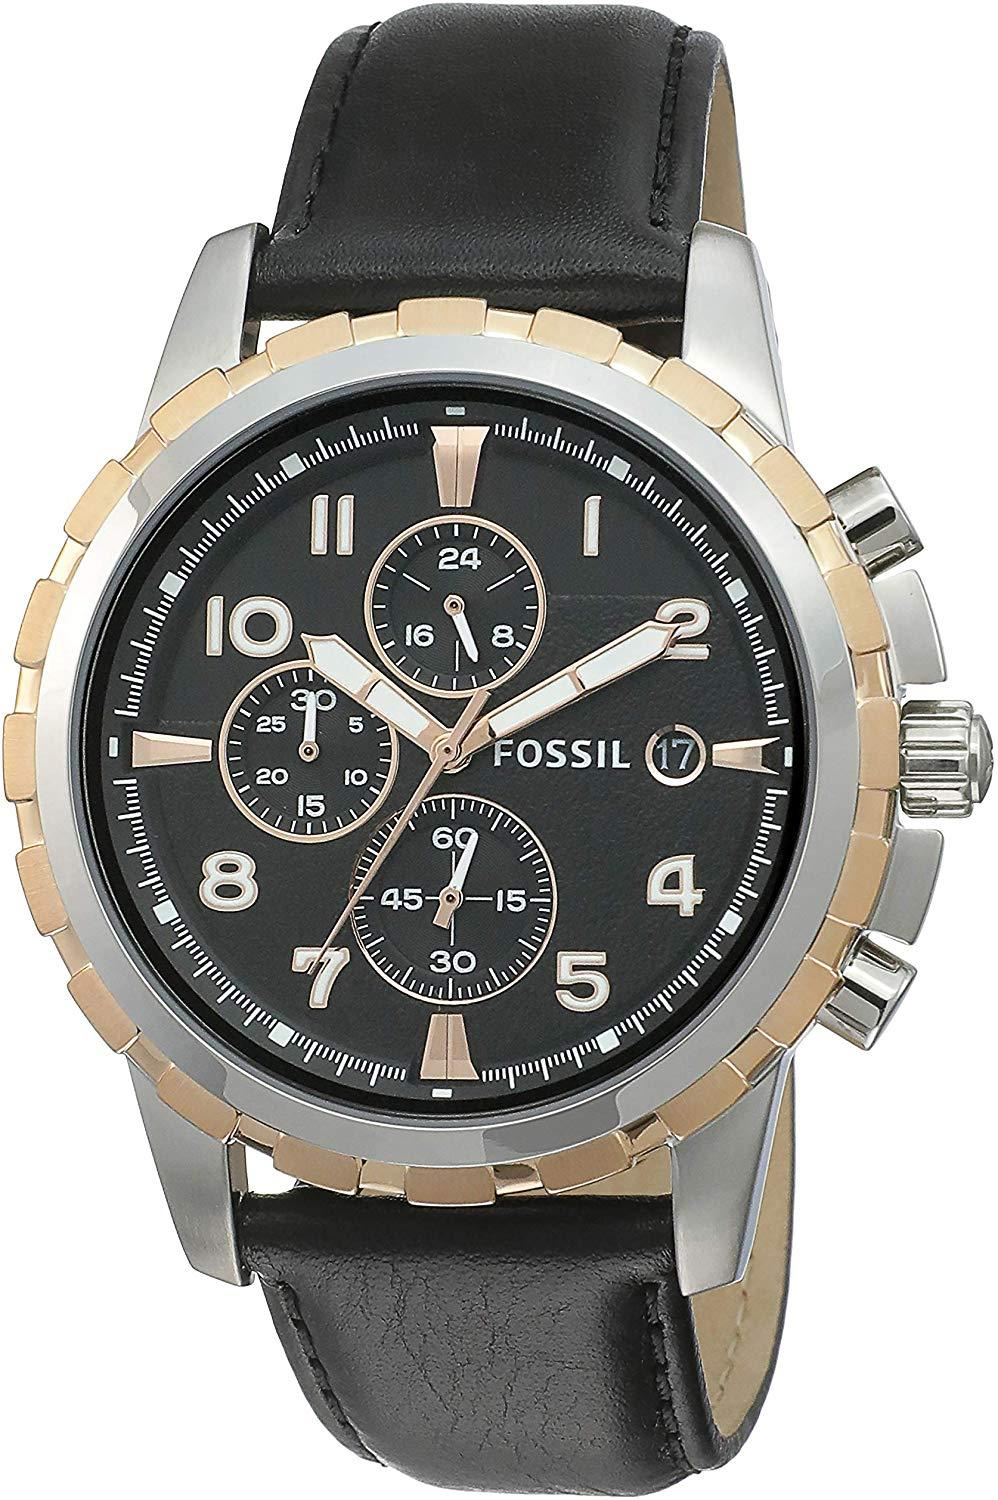 Fossil-FS4813I-Grant-Chronograph-best-Fossil-Watch